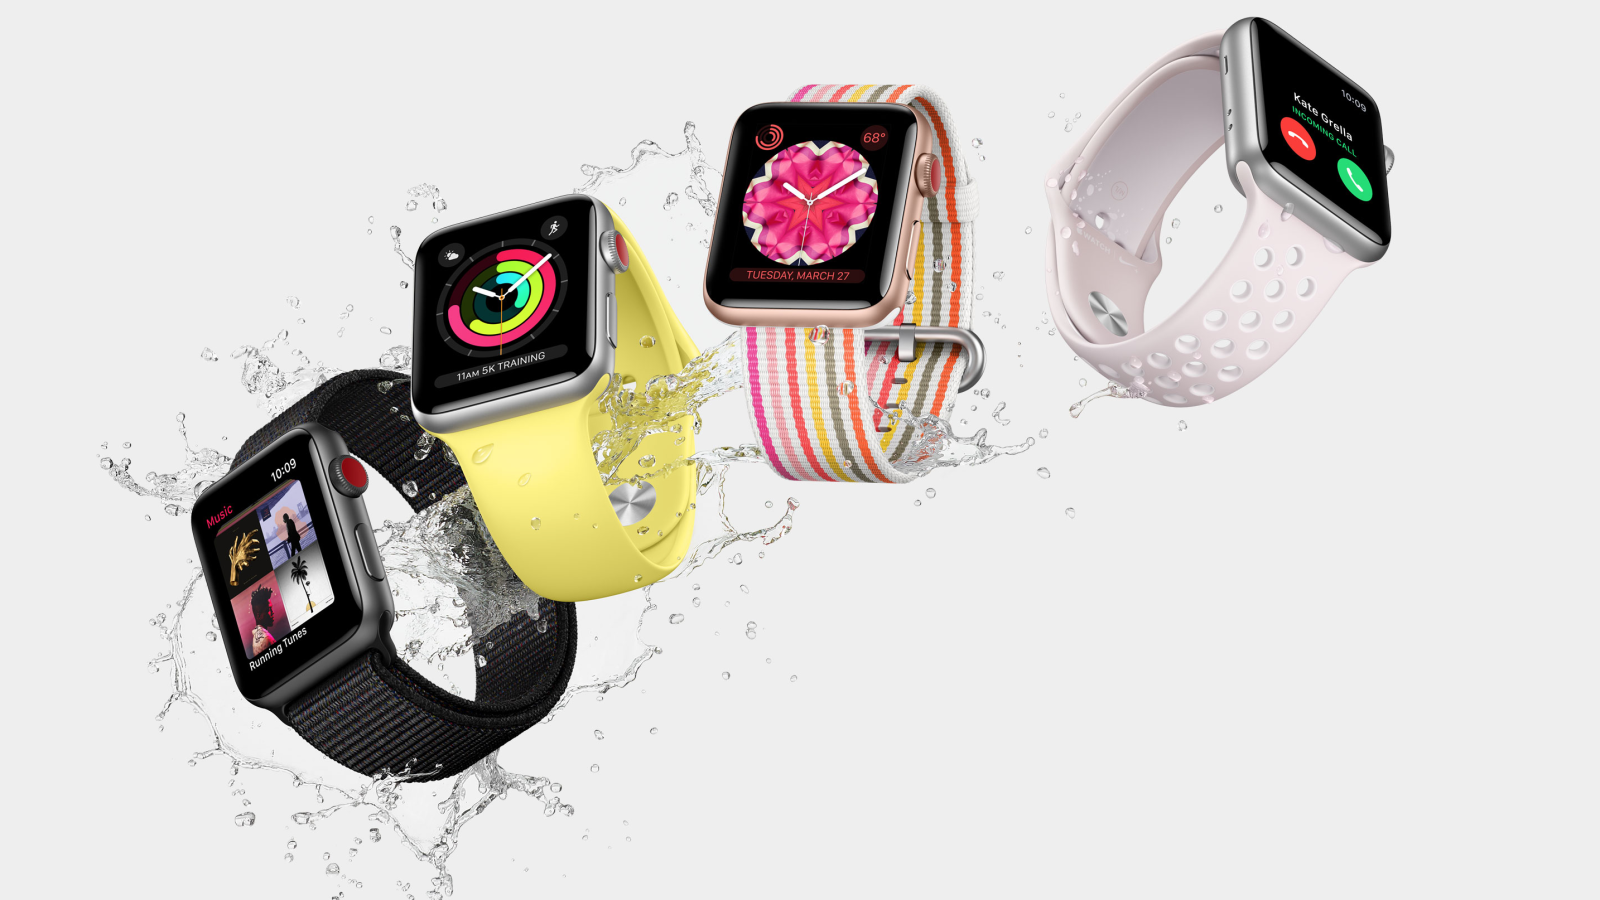 watchOS 4.3.1 beta 2 for Apple Watch now available watchos-4-3-1-beta-2-for-apple-watch-now-available